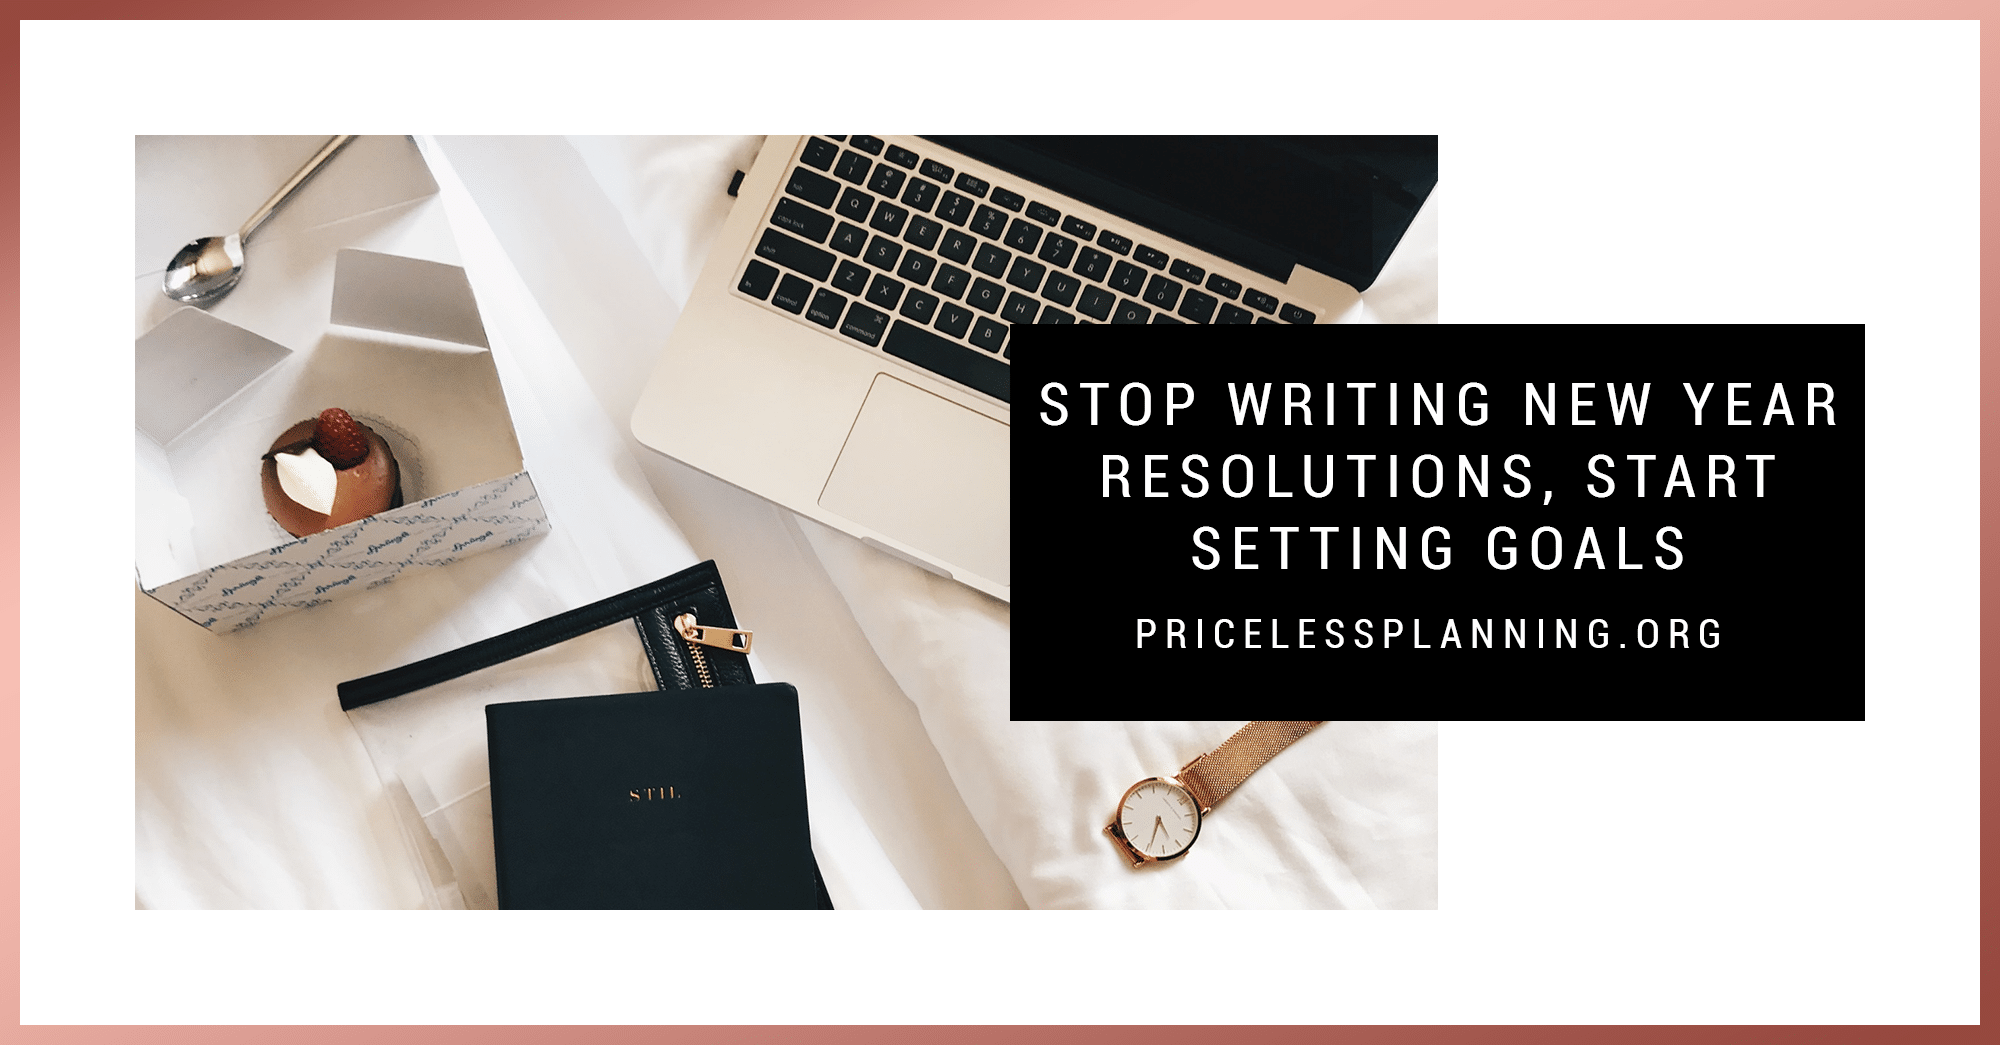 Stop Writing New Year Resolutions, Start Setting Goals - Priceless Planning